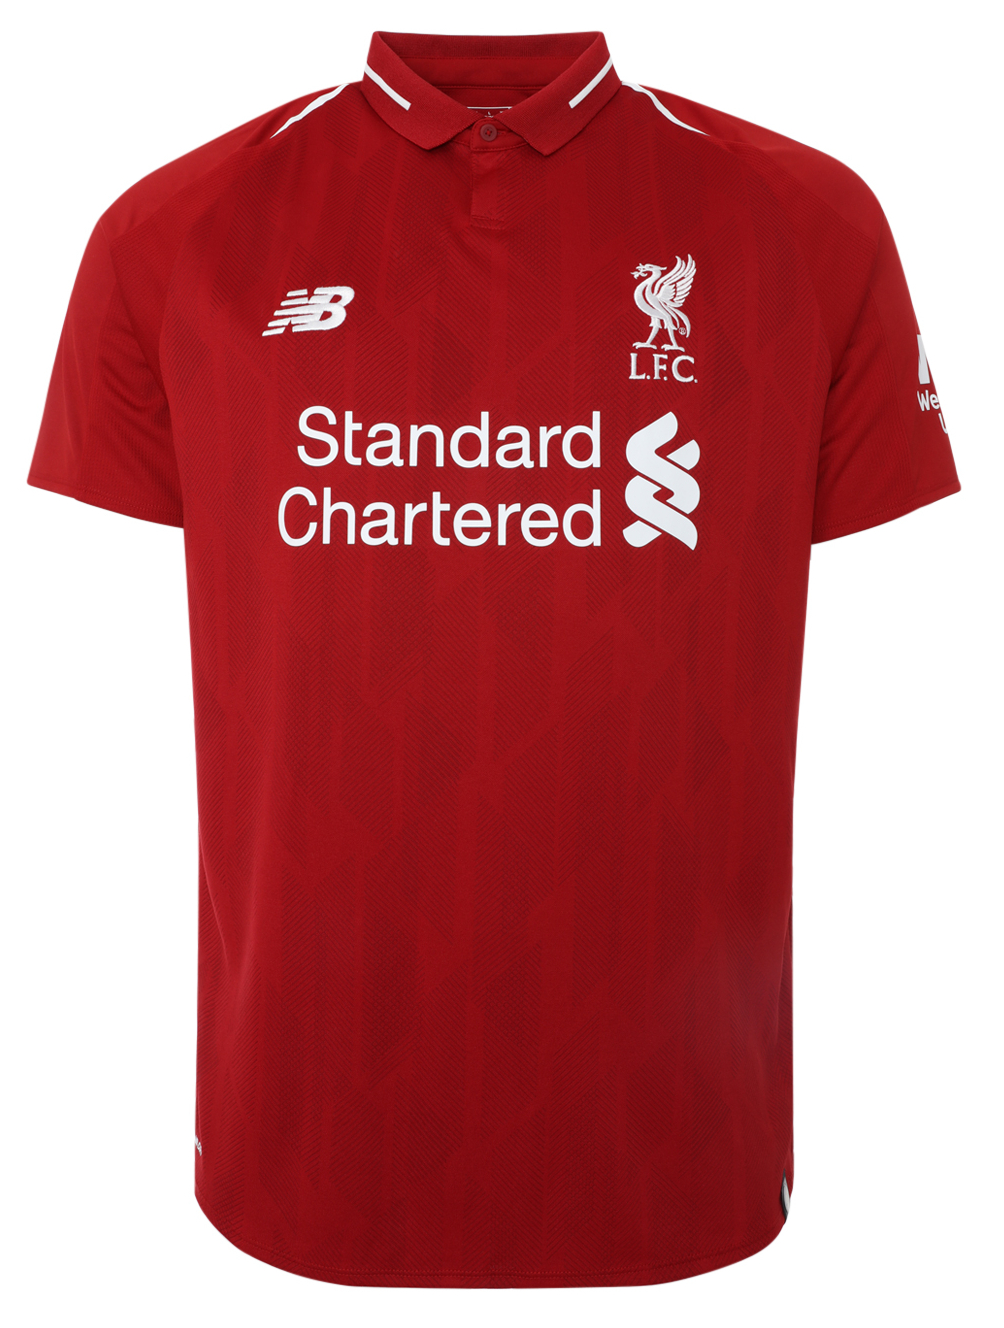 New Liverpool Home Shirt 2018 19